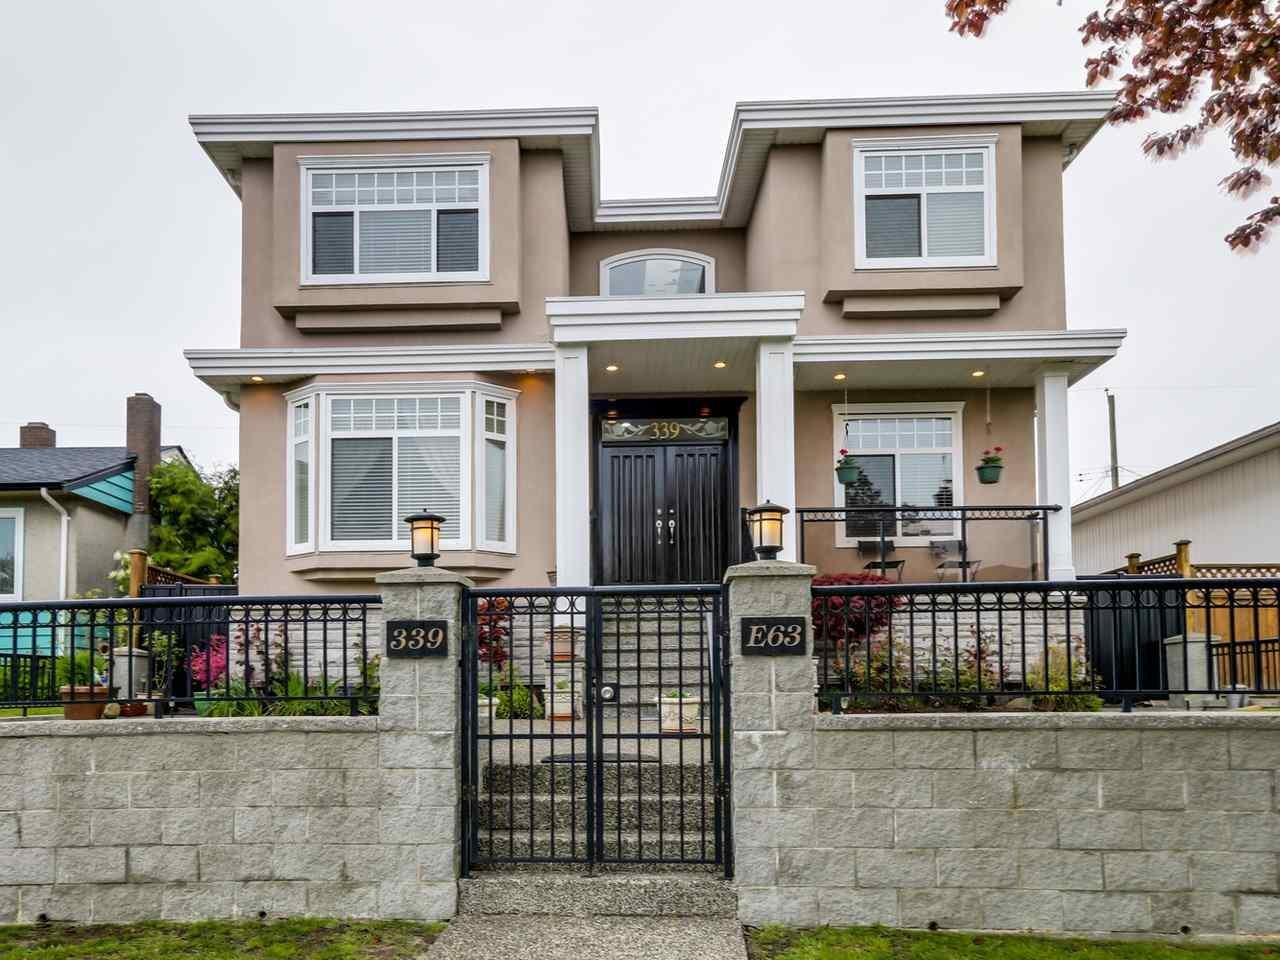 R2053911 - 339 E 63RD AVENUE, South Vancouver, Vancouver, BC - House/Single Family